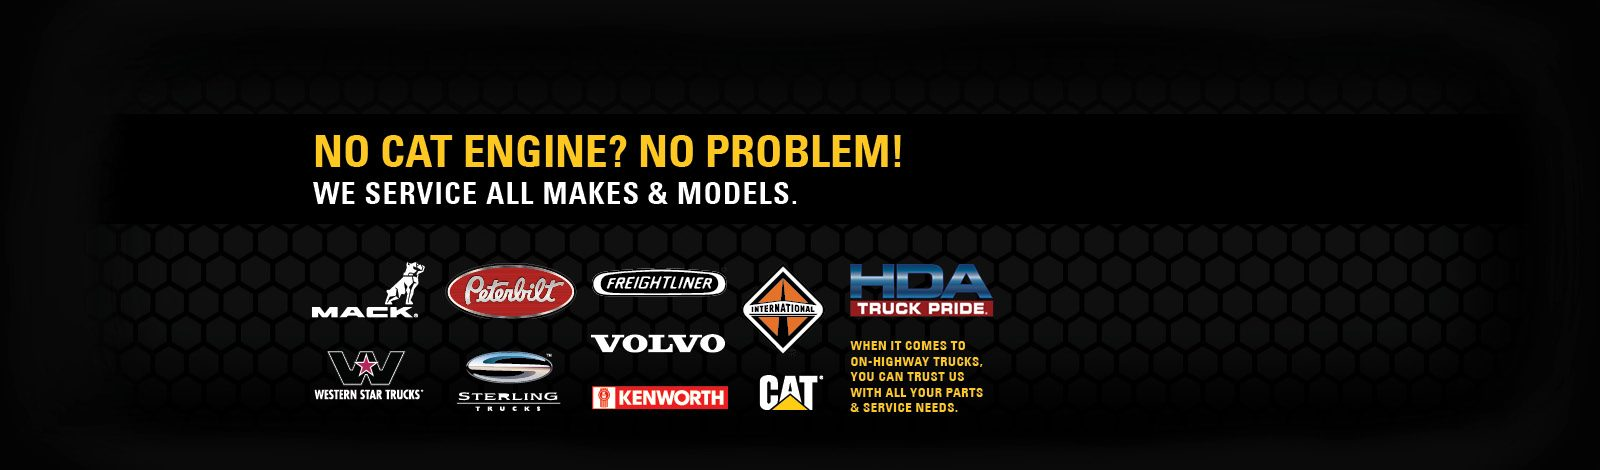 NO CAT ENGINE? NO PROBLEM! We service all makes & models. Mack, Peterbilt, Freightliner, International, Western Star Trucks, Sterling, Volvo and Kenworth